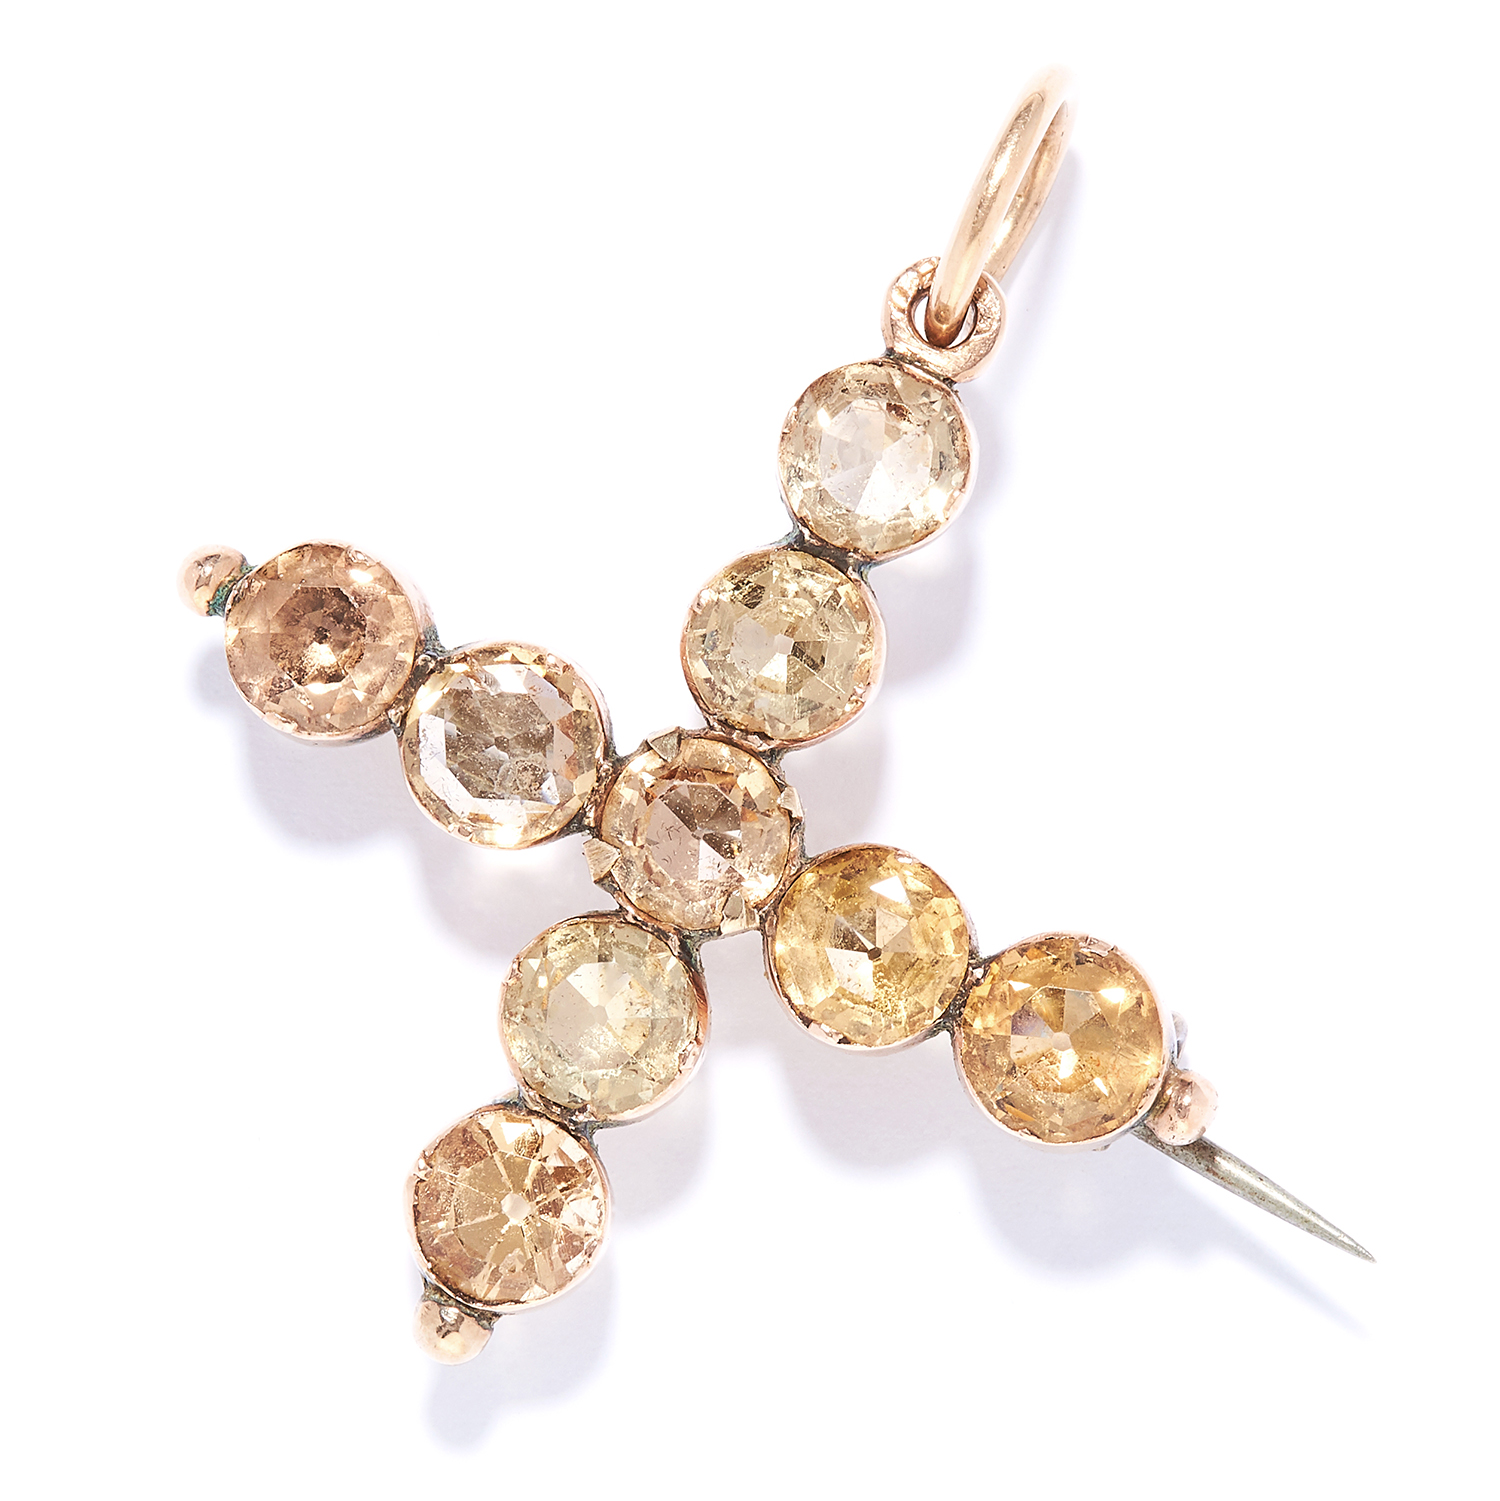 ANTIQUE TOPAZ CROSS BROOCH / PENDANT in high carat yellow gold, set with round cut topaz,